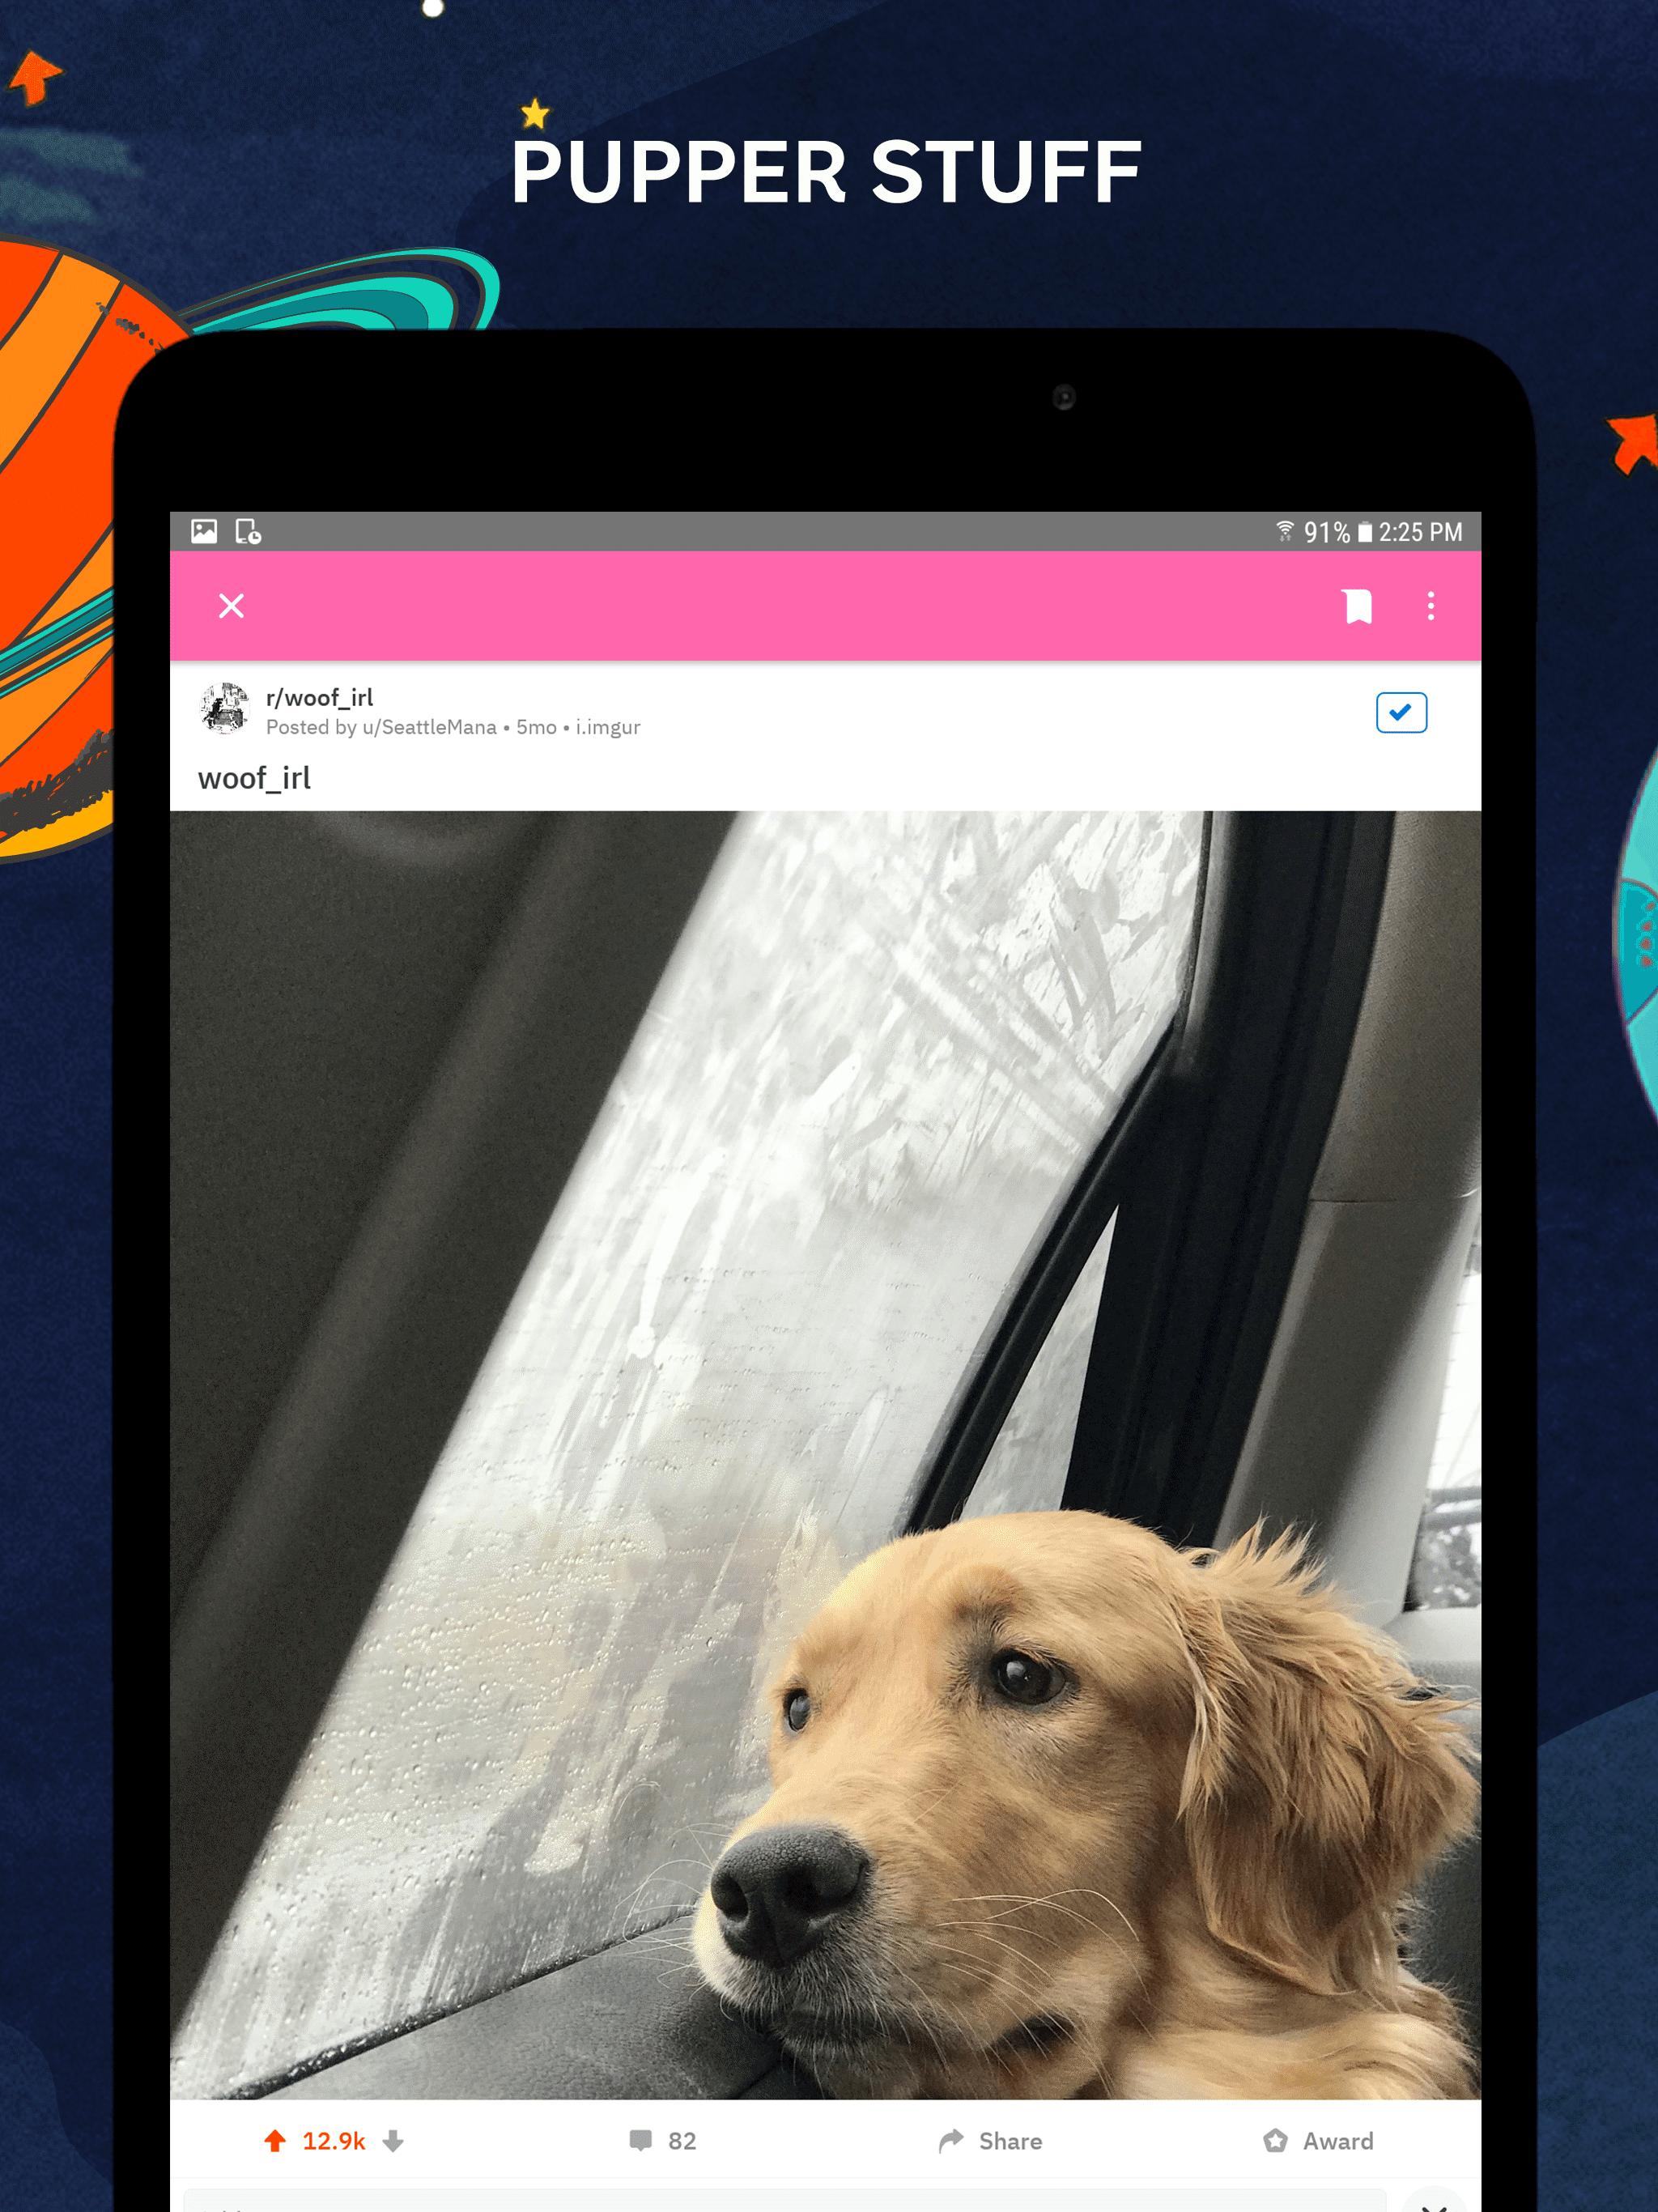 Reddit APK Download, Reddit official App 3 23 0 for Android